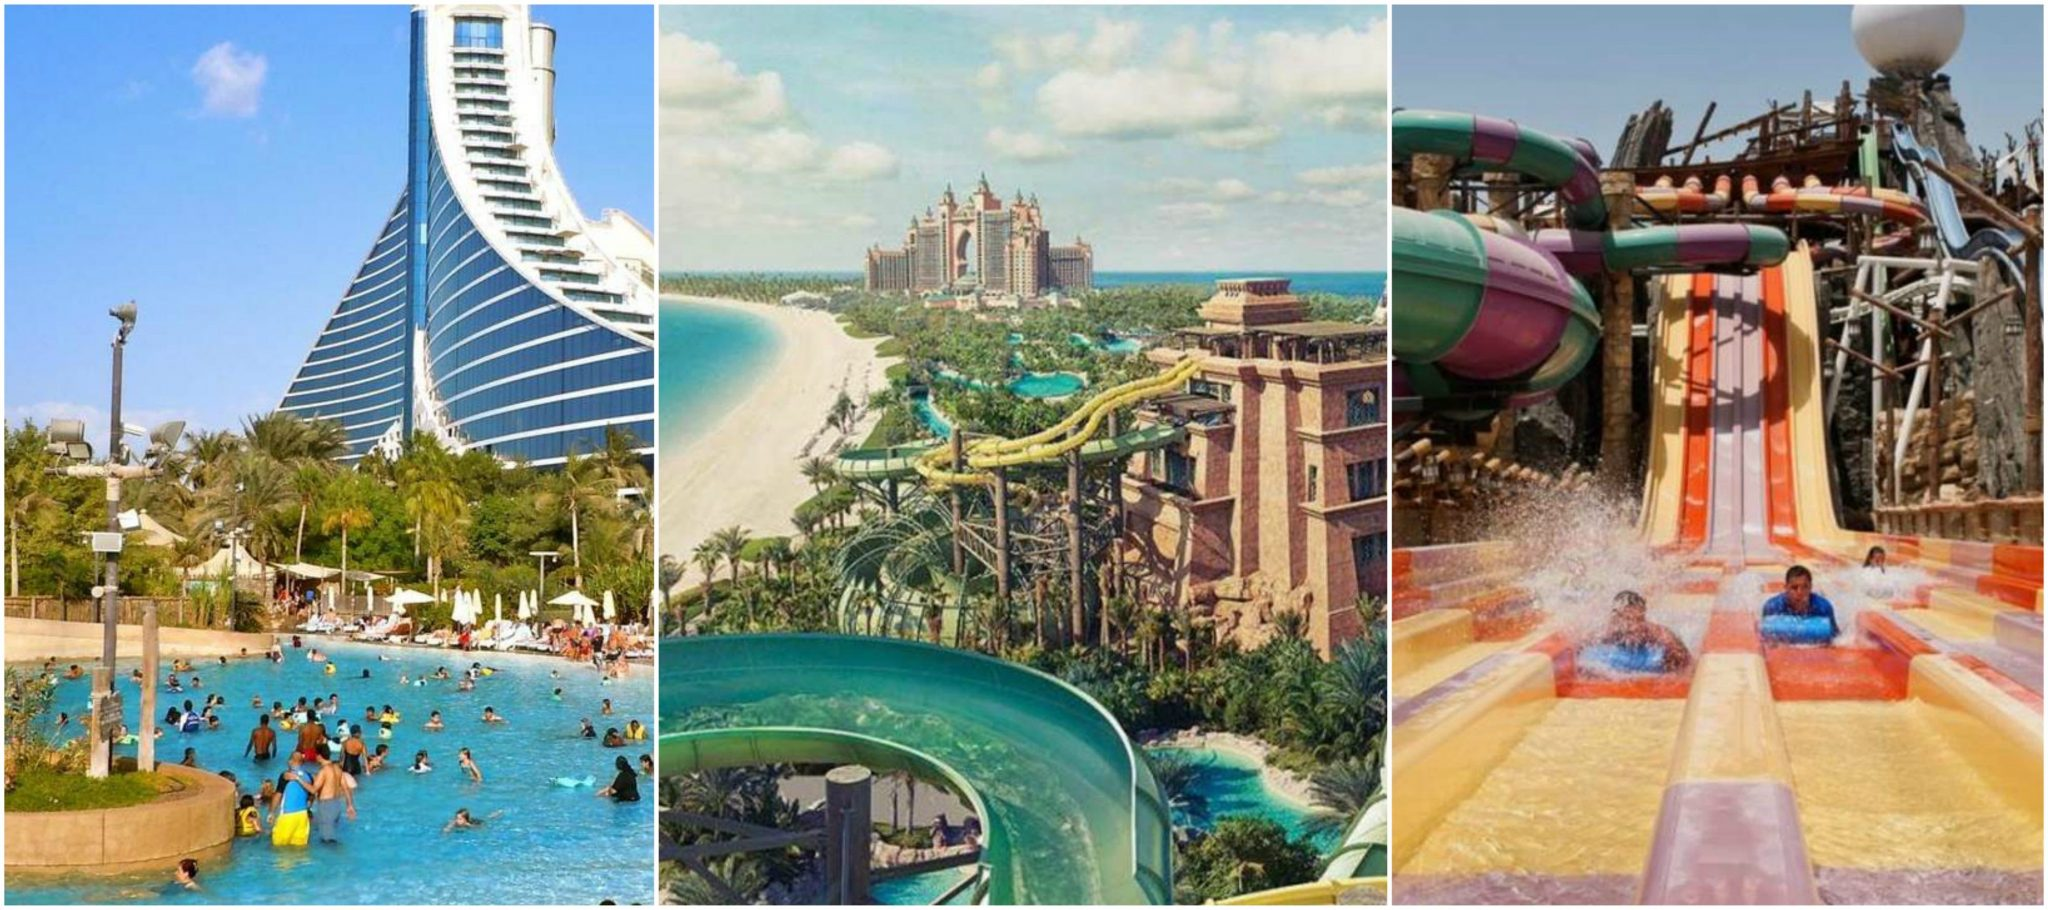 List of Theme Parks in the UAE